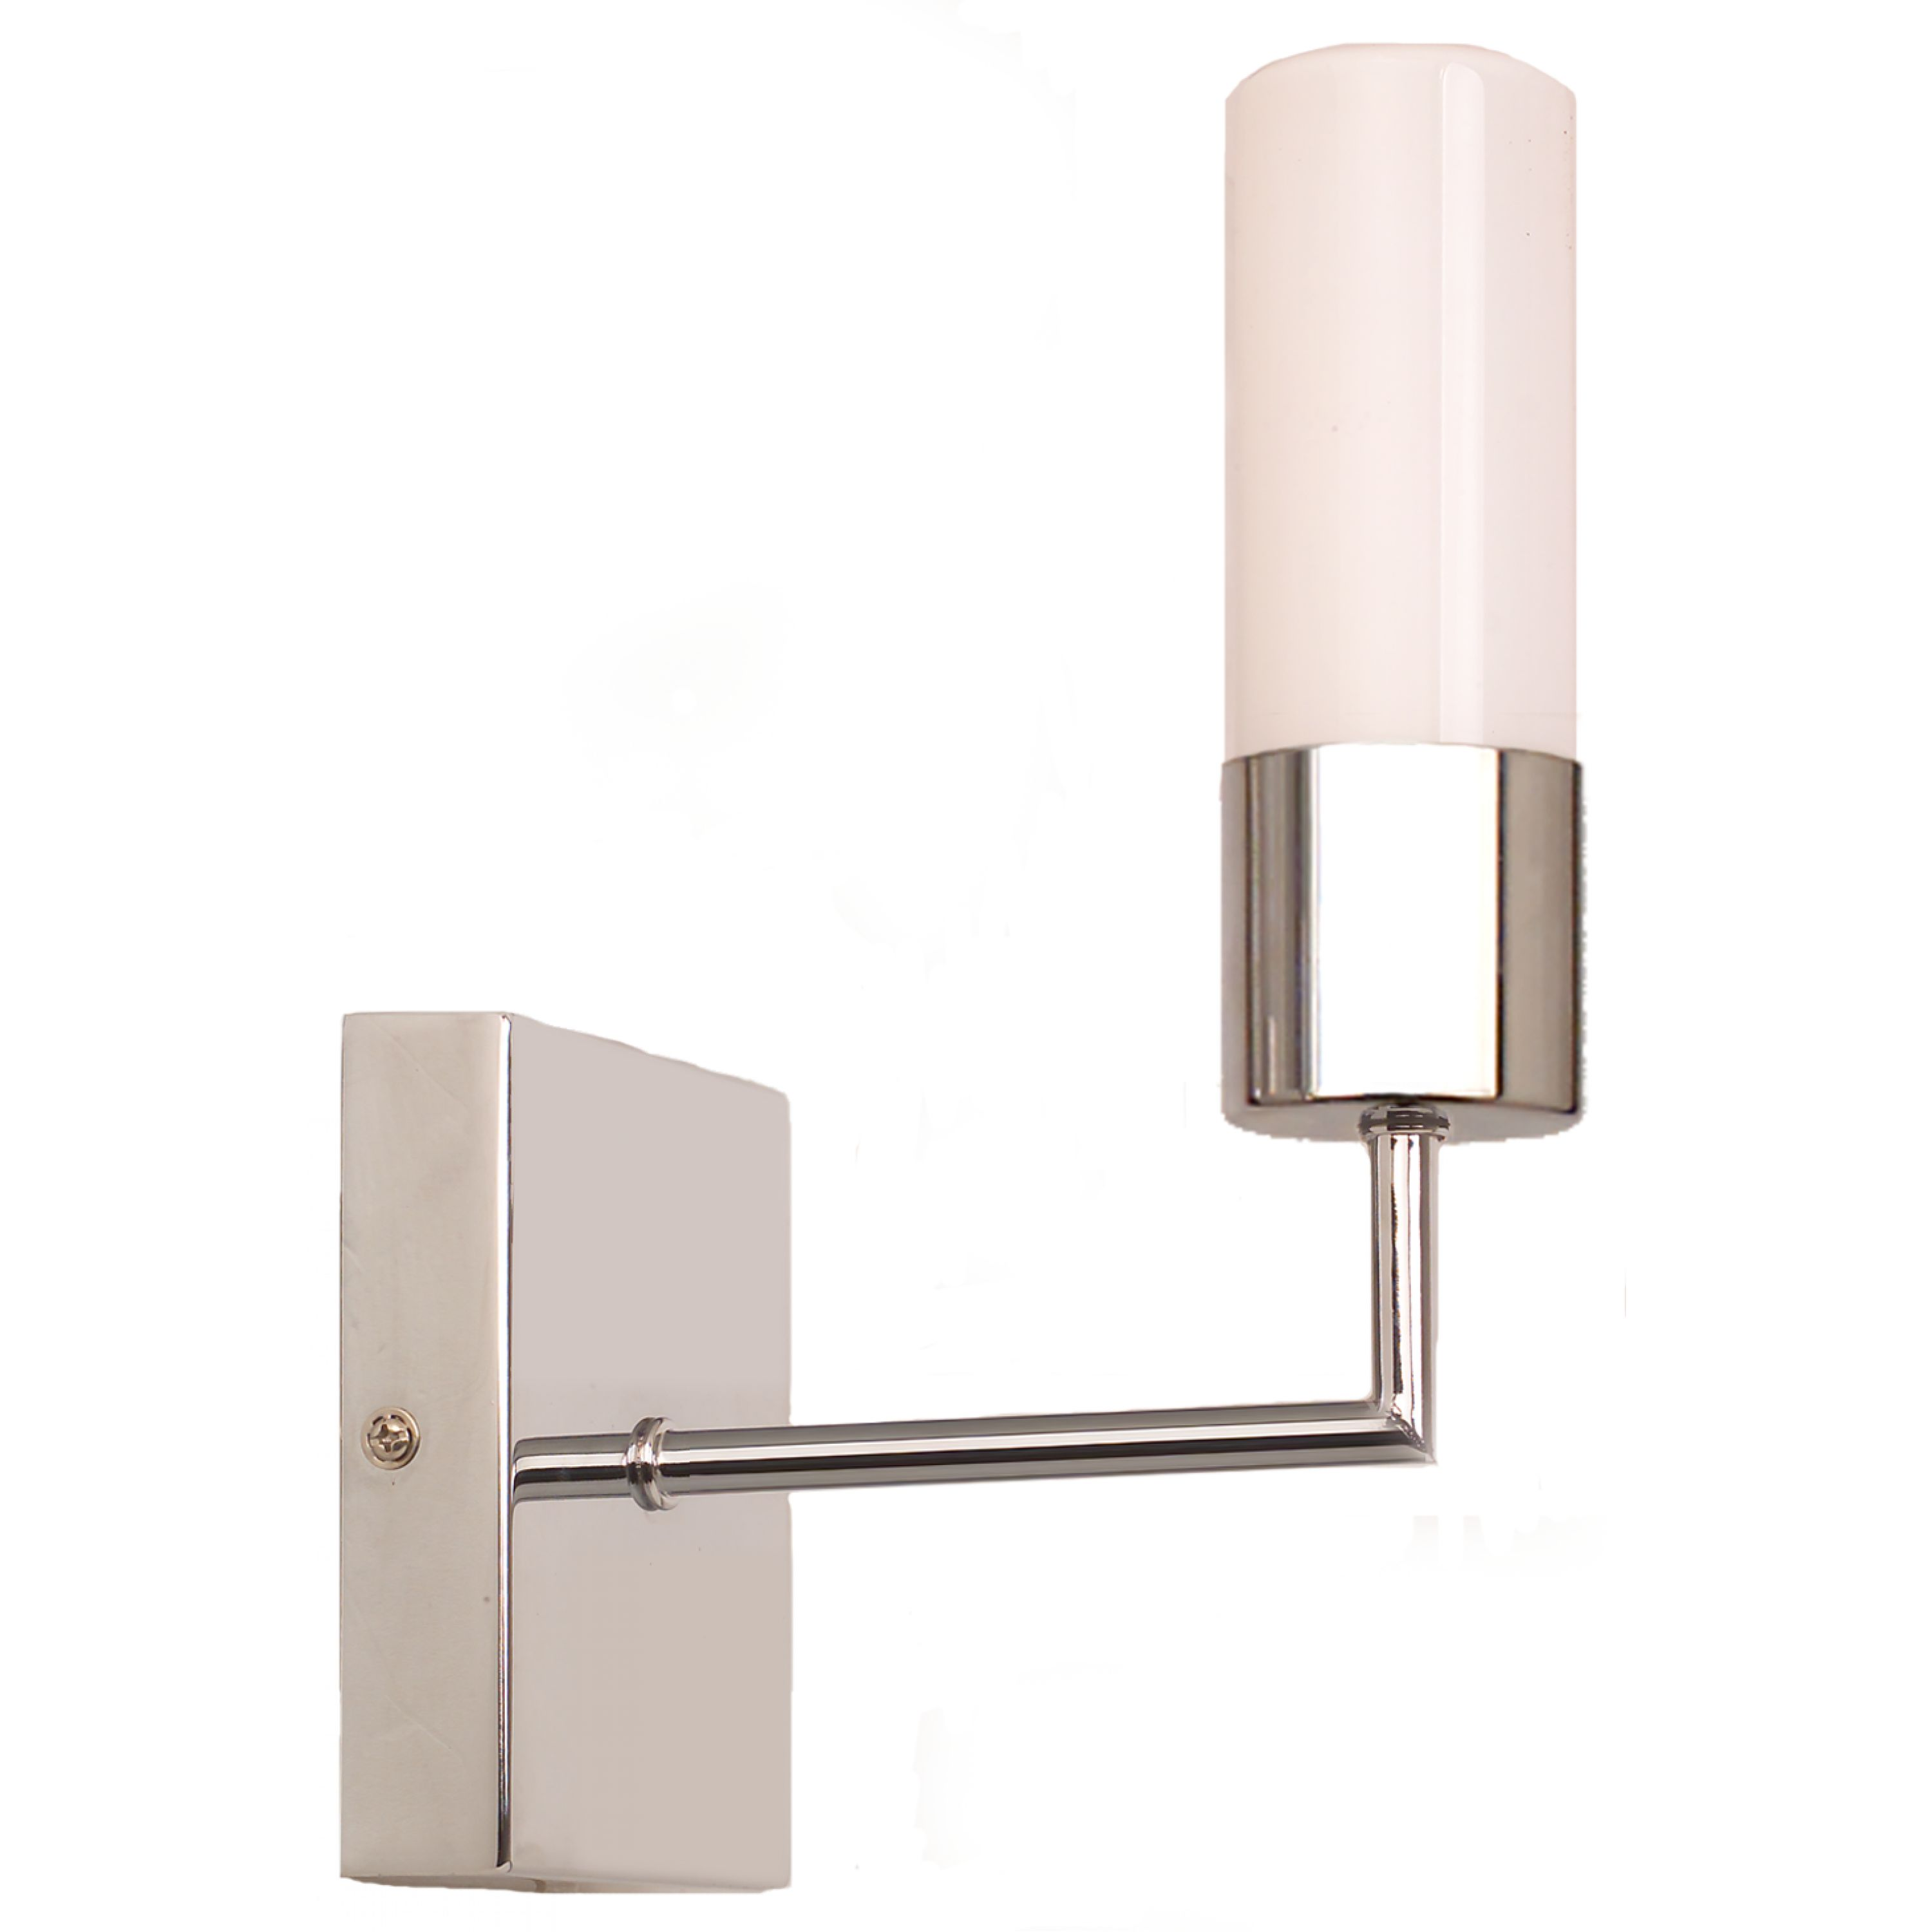 MIA LED Recessed Wall Light (brushed nickel, cool white)